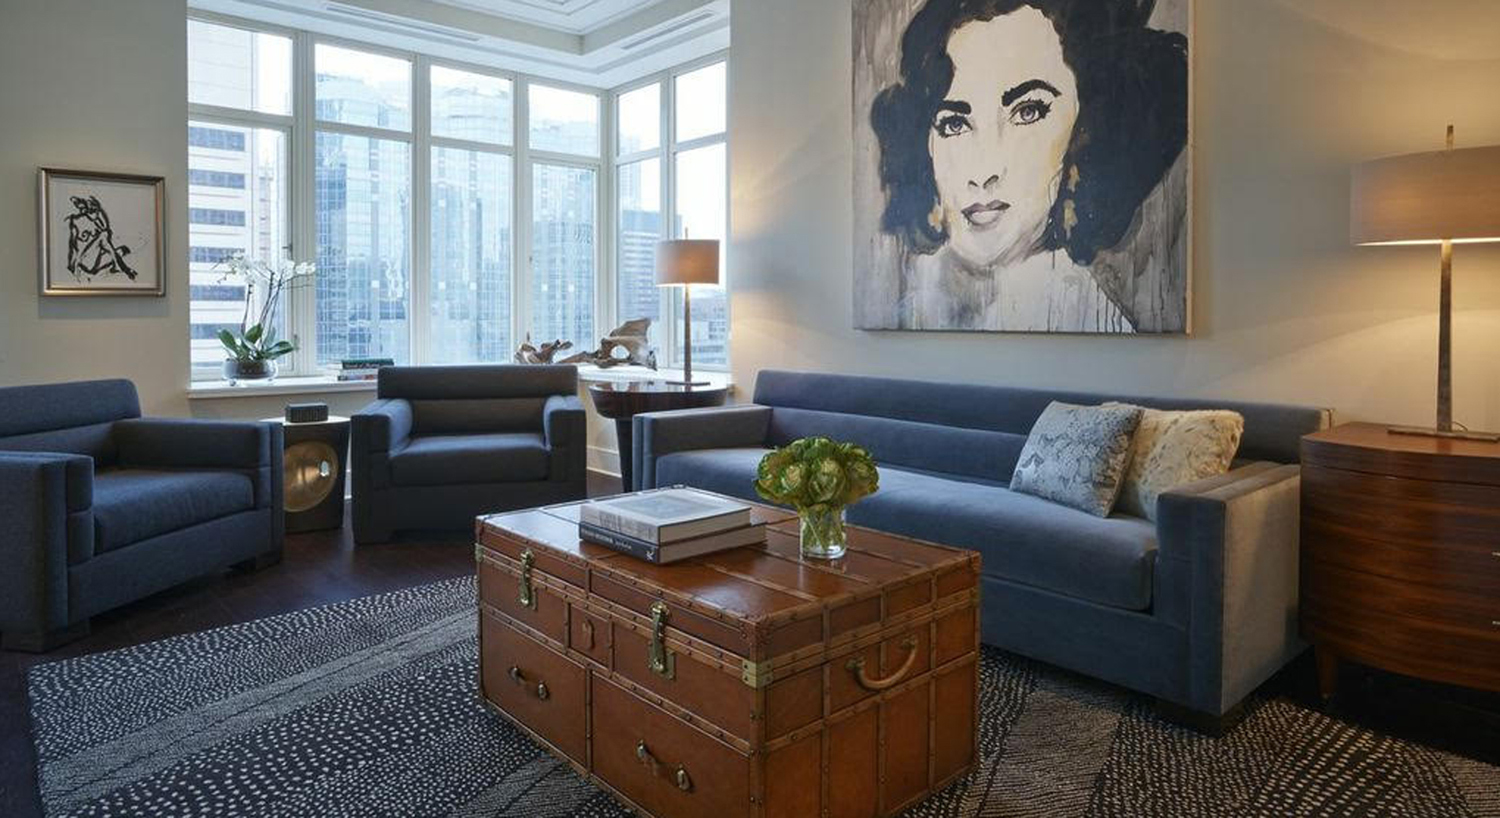 Designer: Gray | Walter Location: Ritz-Carlton, Chicago Rug Design: Chevron